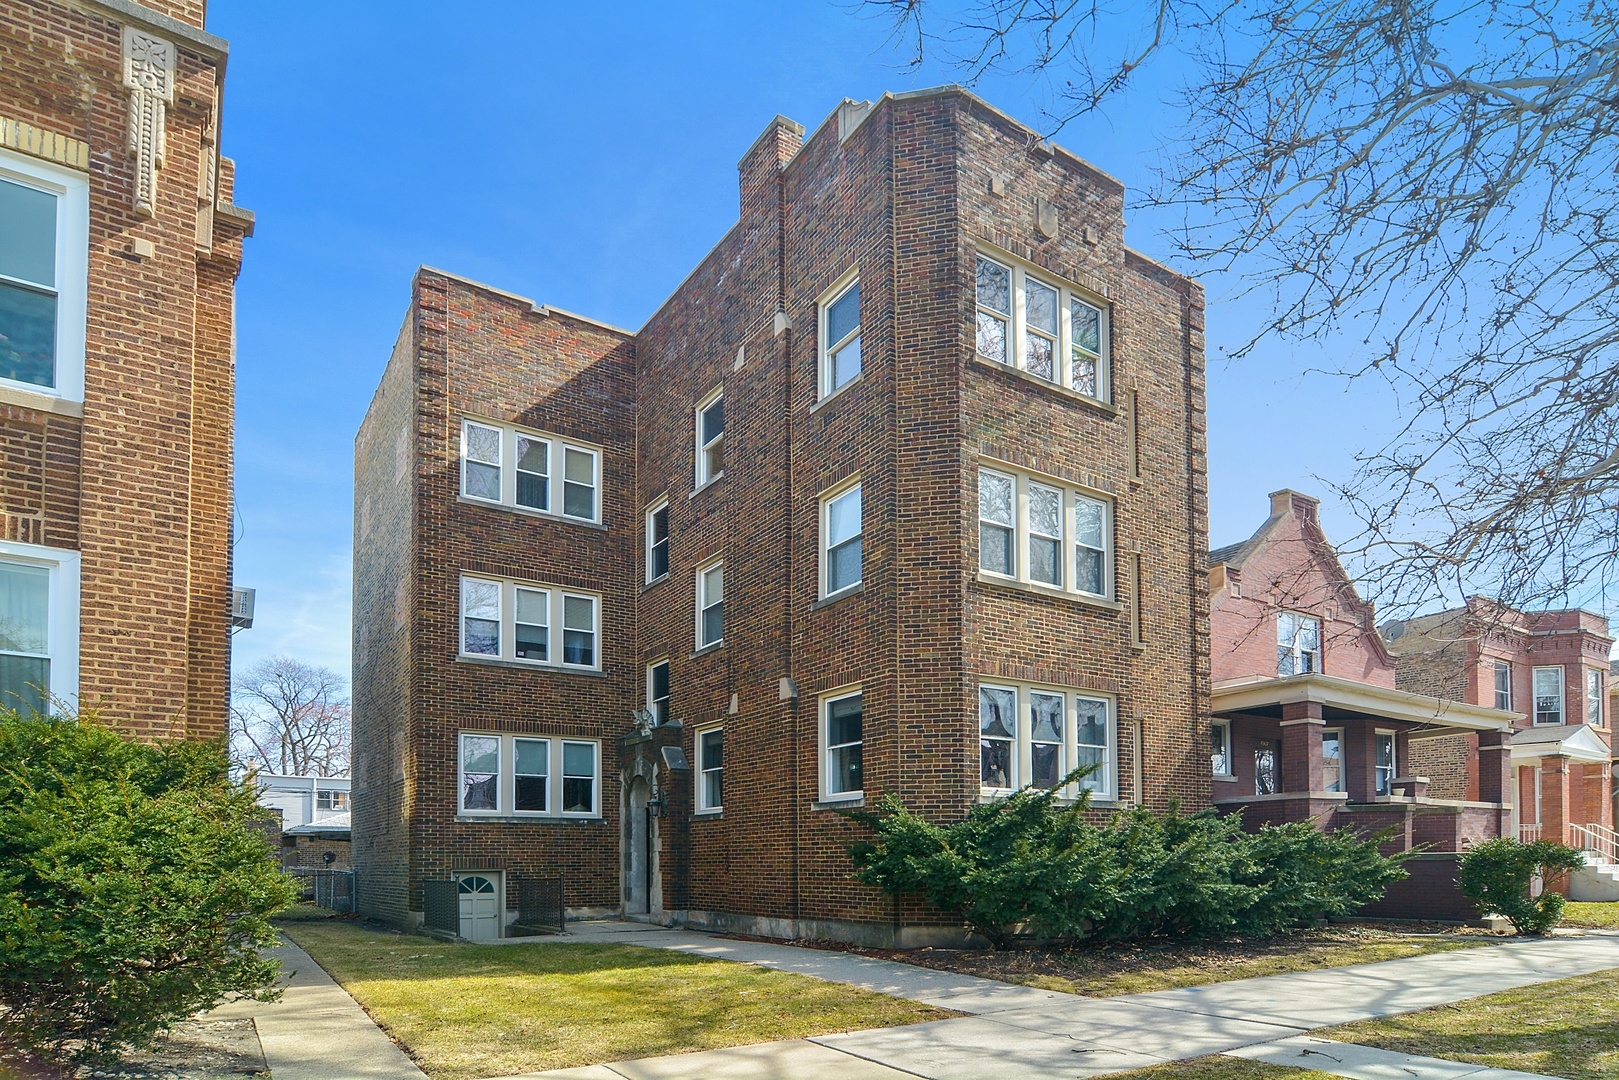 Property for sale at 4521 North Harding Avenue, Chicago-CHI - Albany Park,  Il 60625